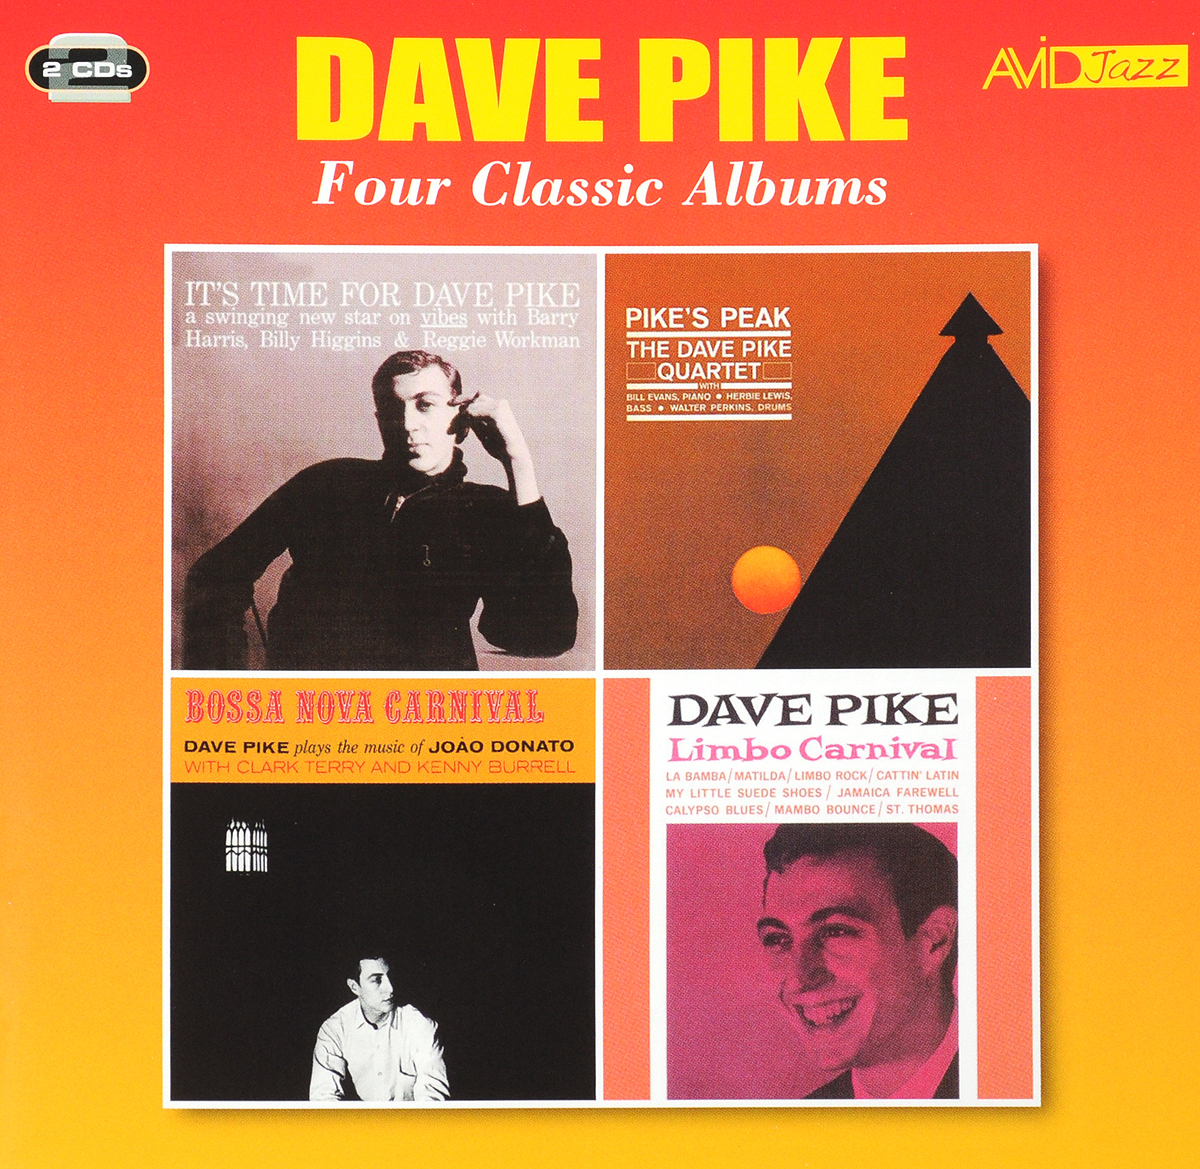 Дэйв Пайк Dave Pike. Four Classic Albums (2 CD) каунт бэйси count basie four classic albums plus 2 cd